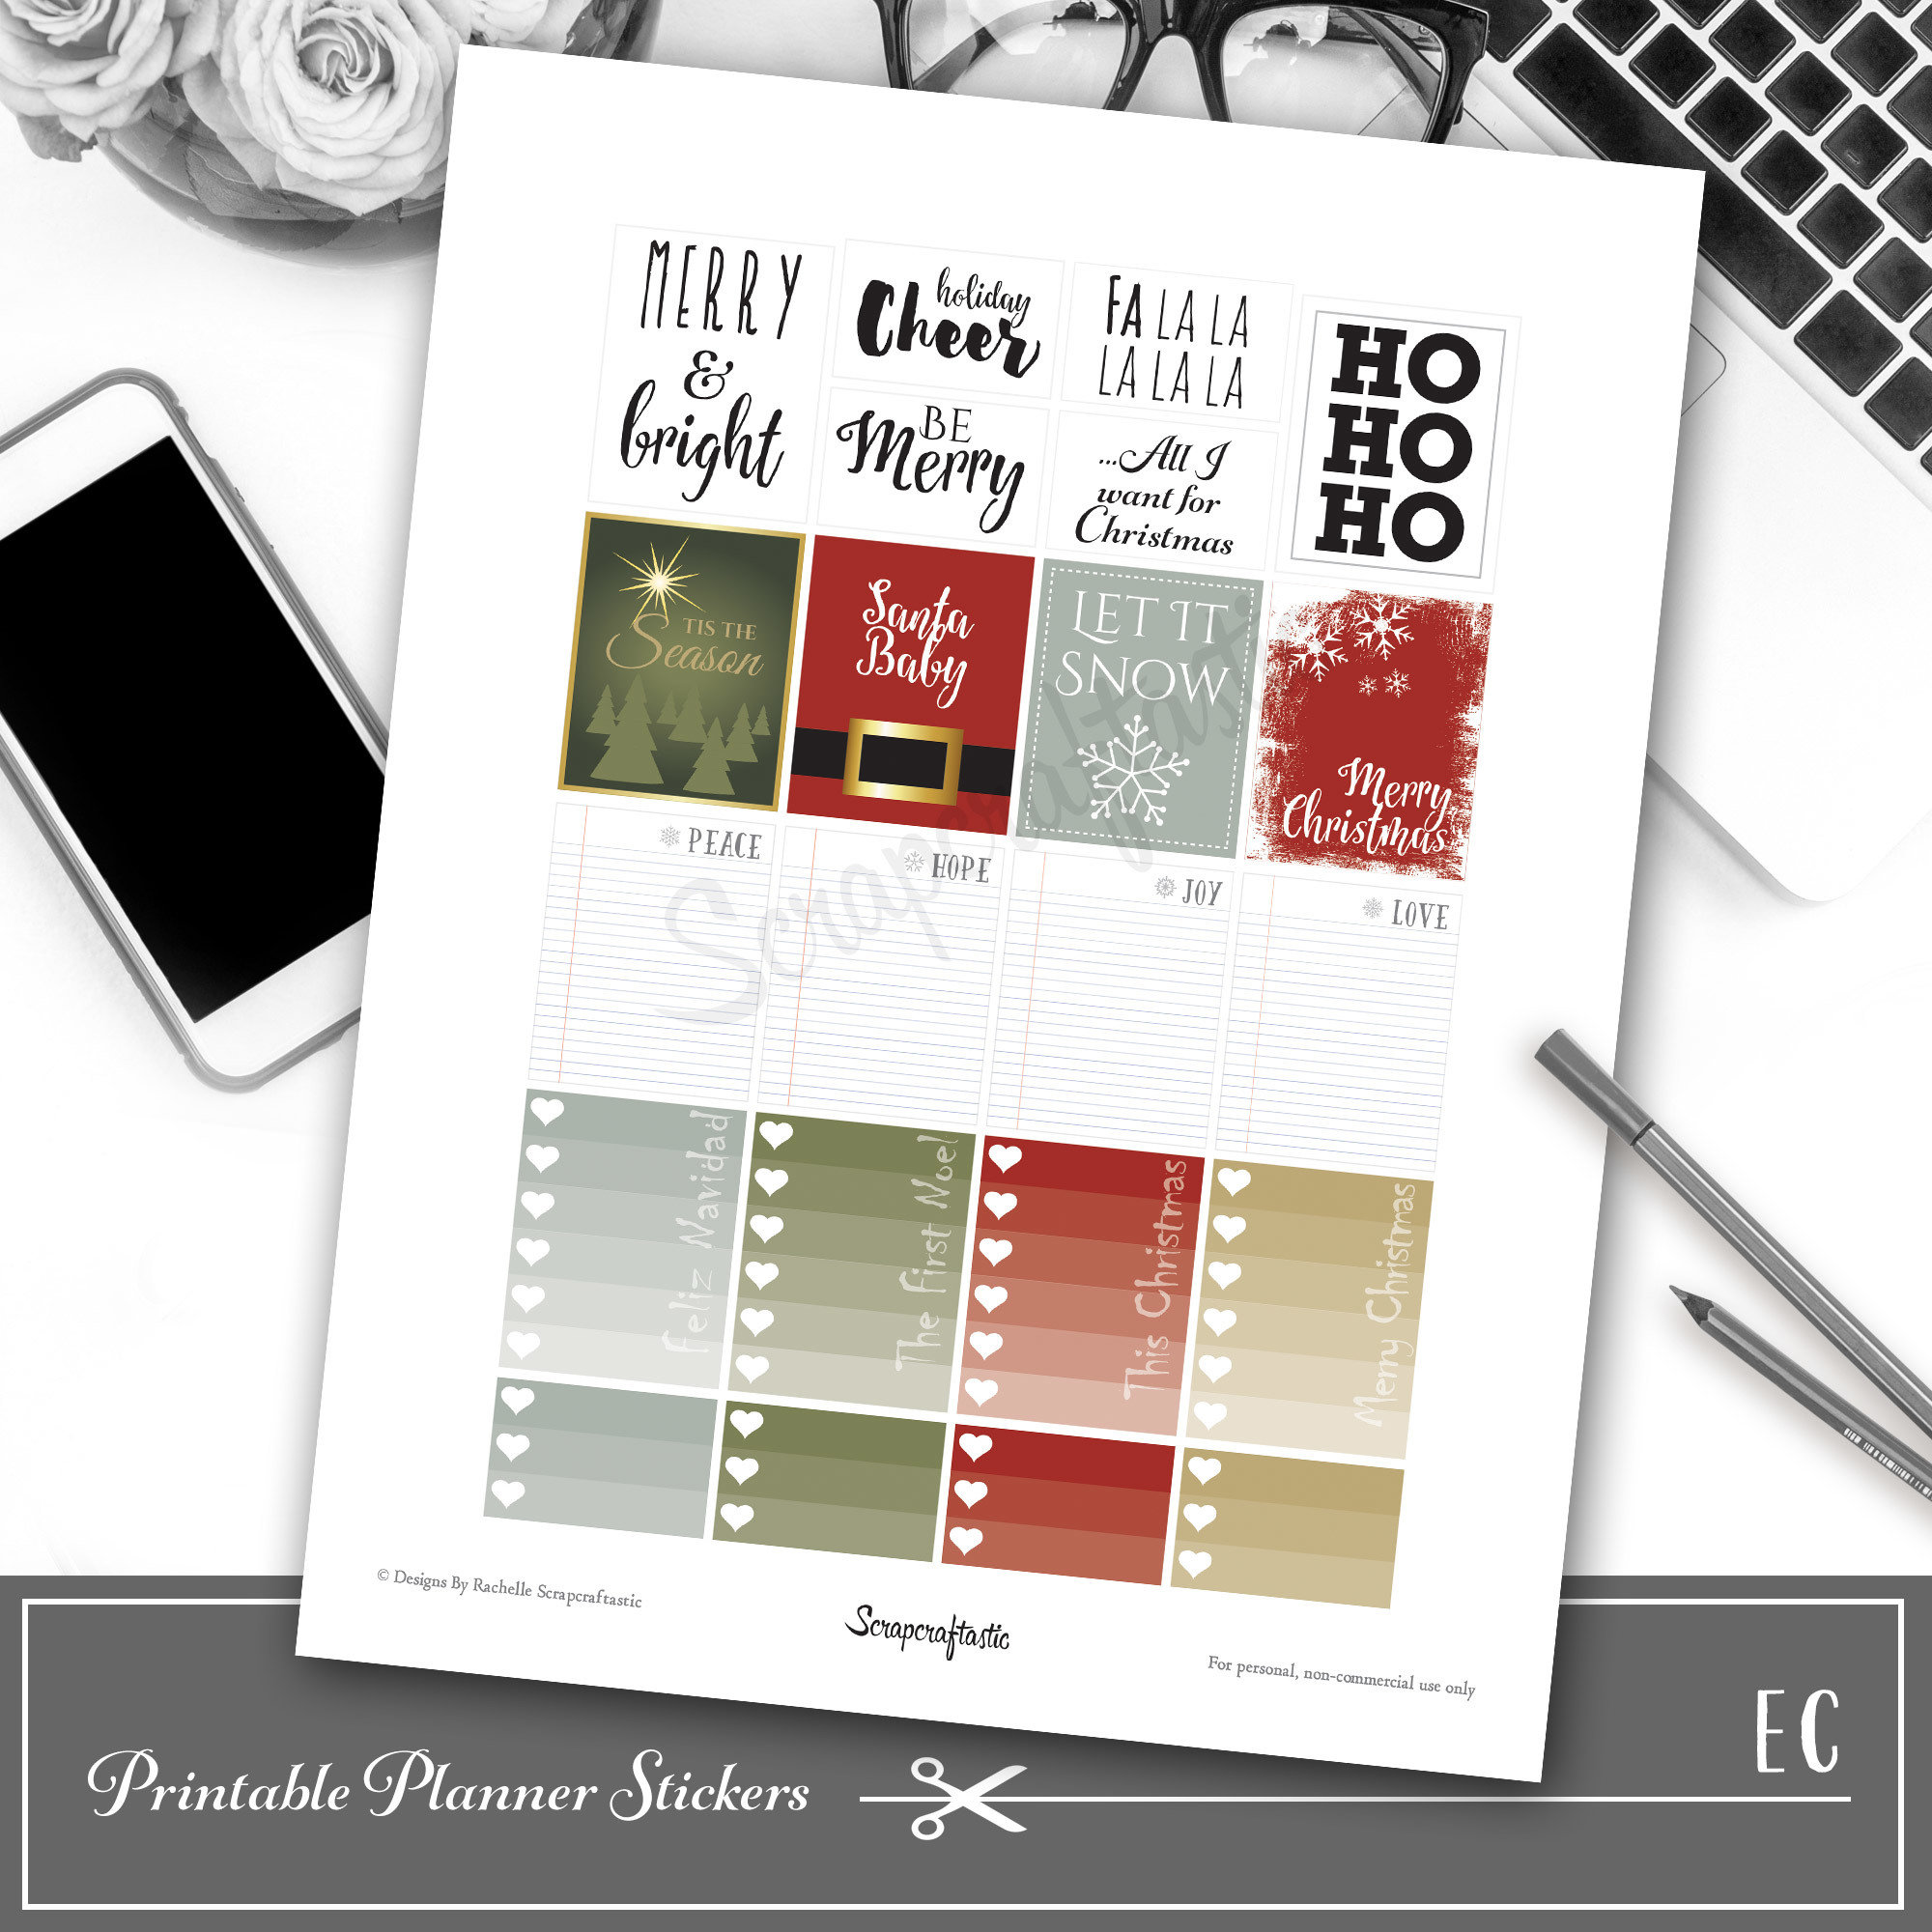 SayIt Christmas Quote Printable Planner Stickers for Erin Condren (EC) Life Planner 04155